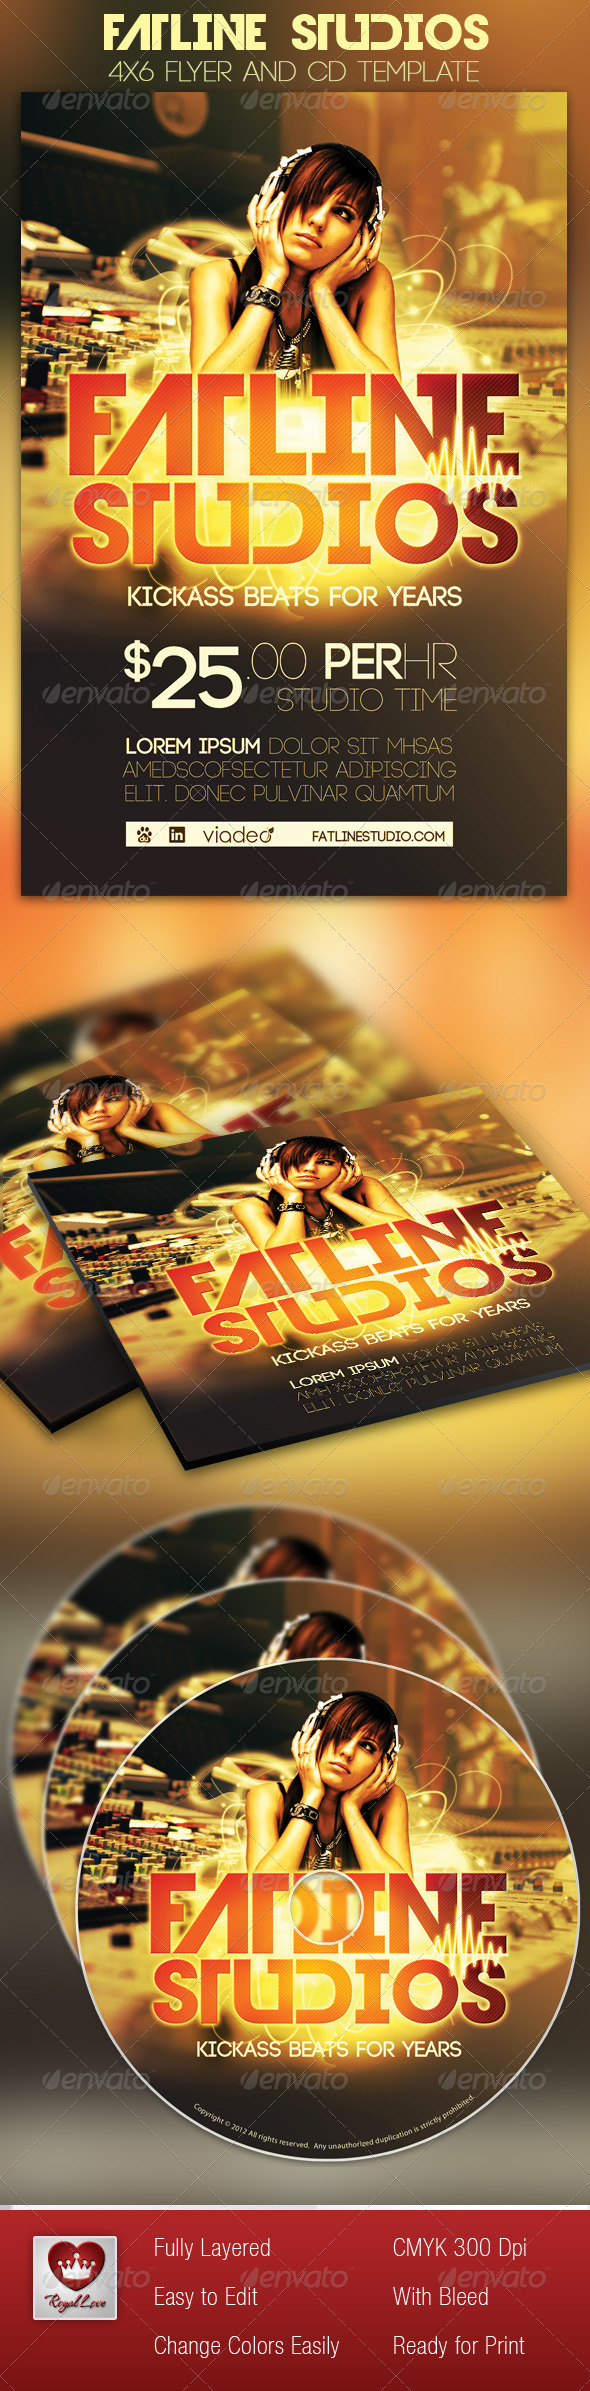 Fatline Studios Flyer and CD Template - Miscellaneous Events